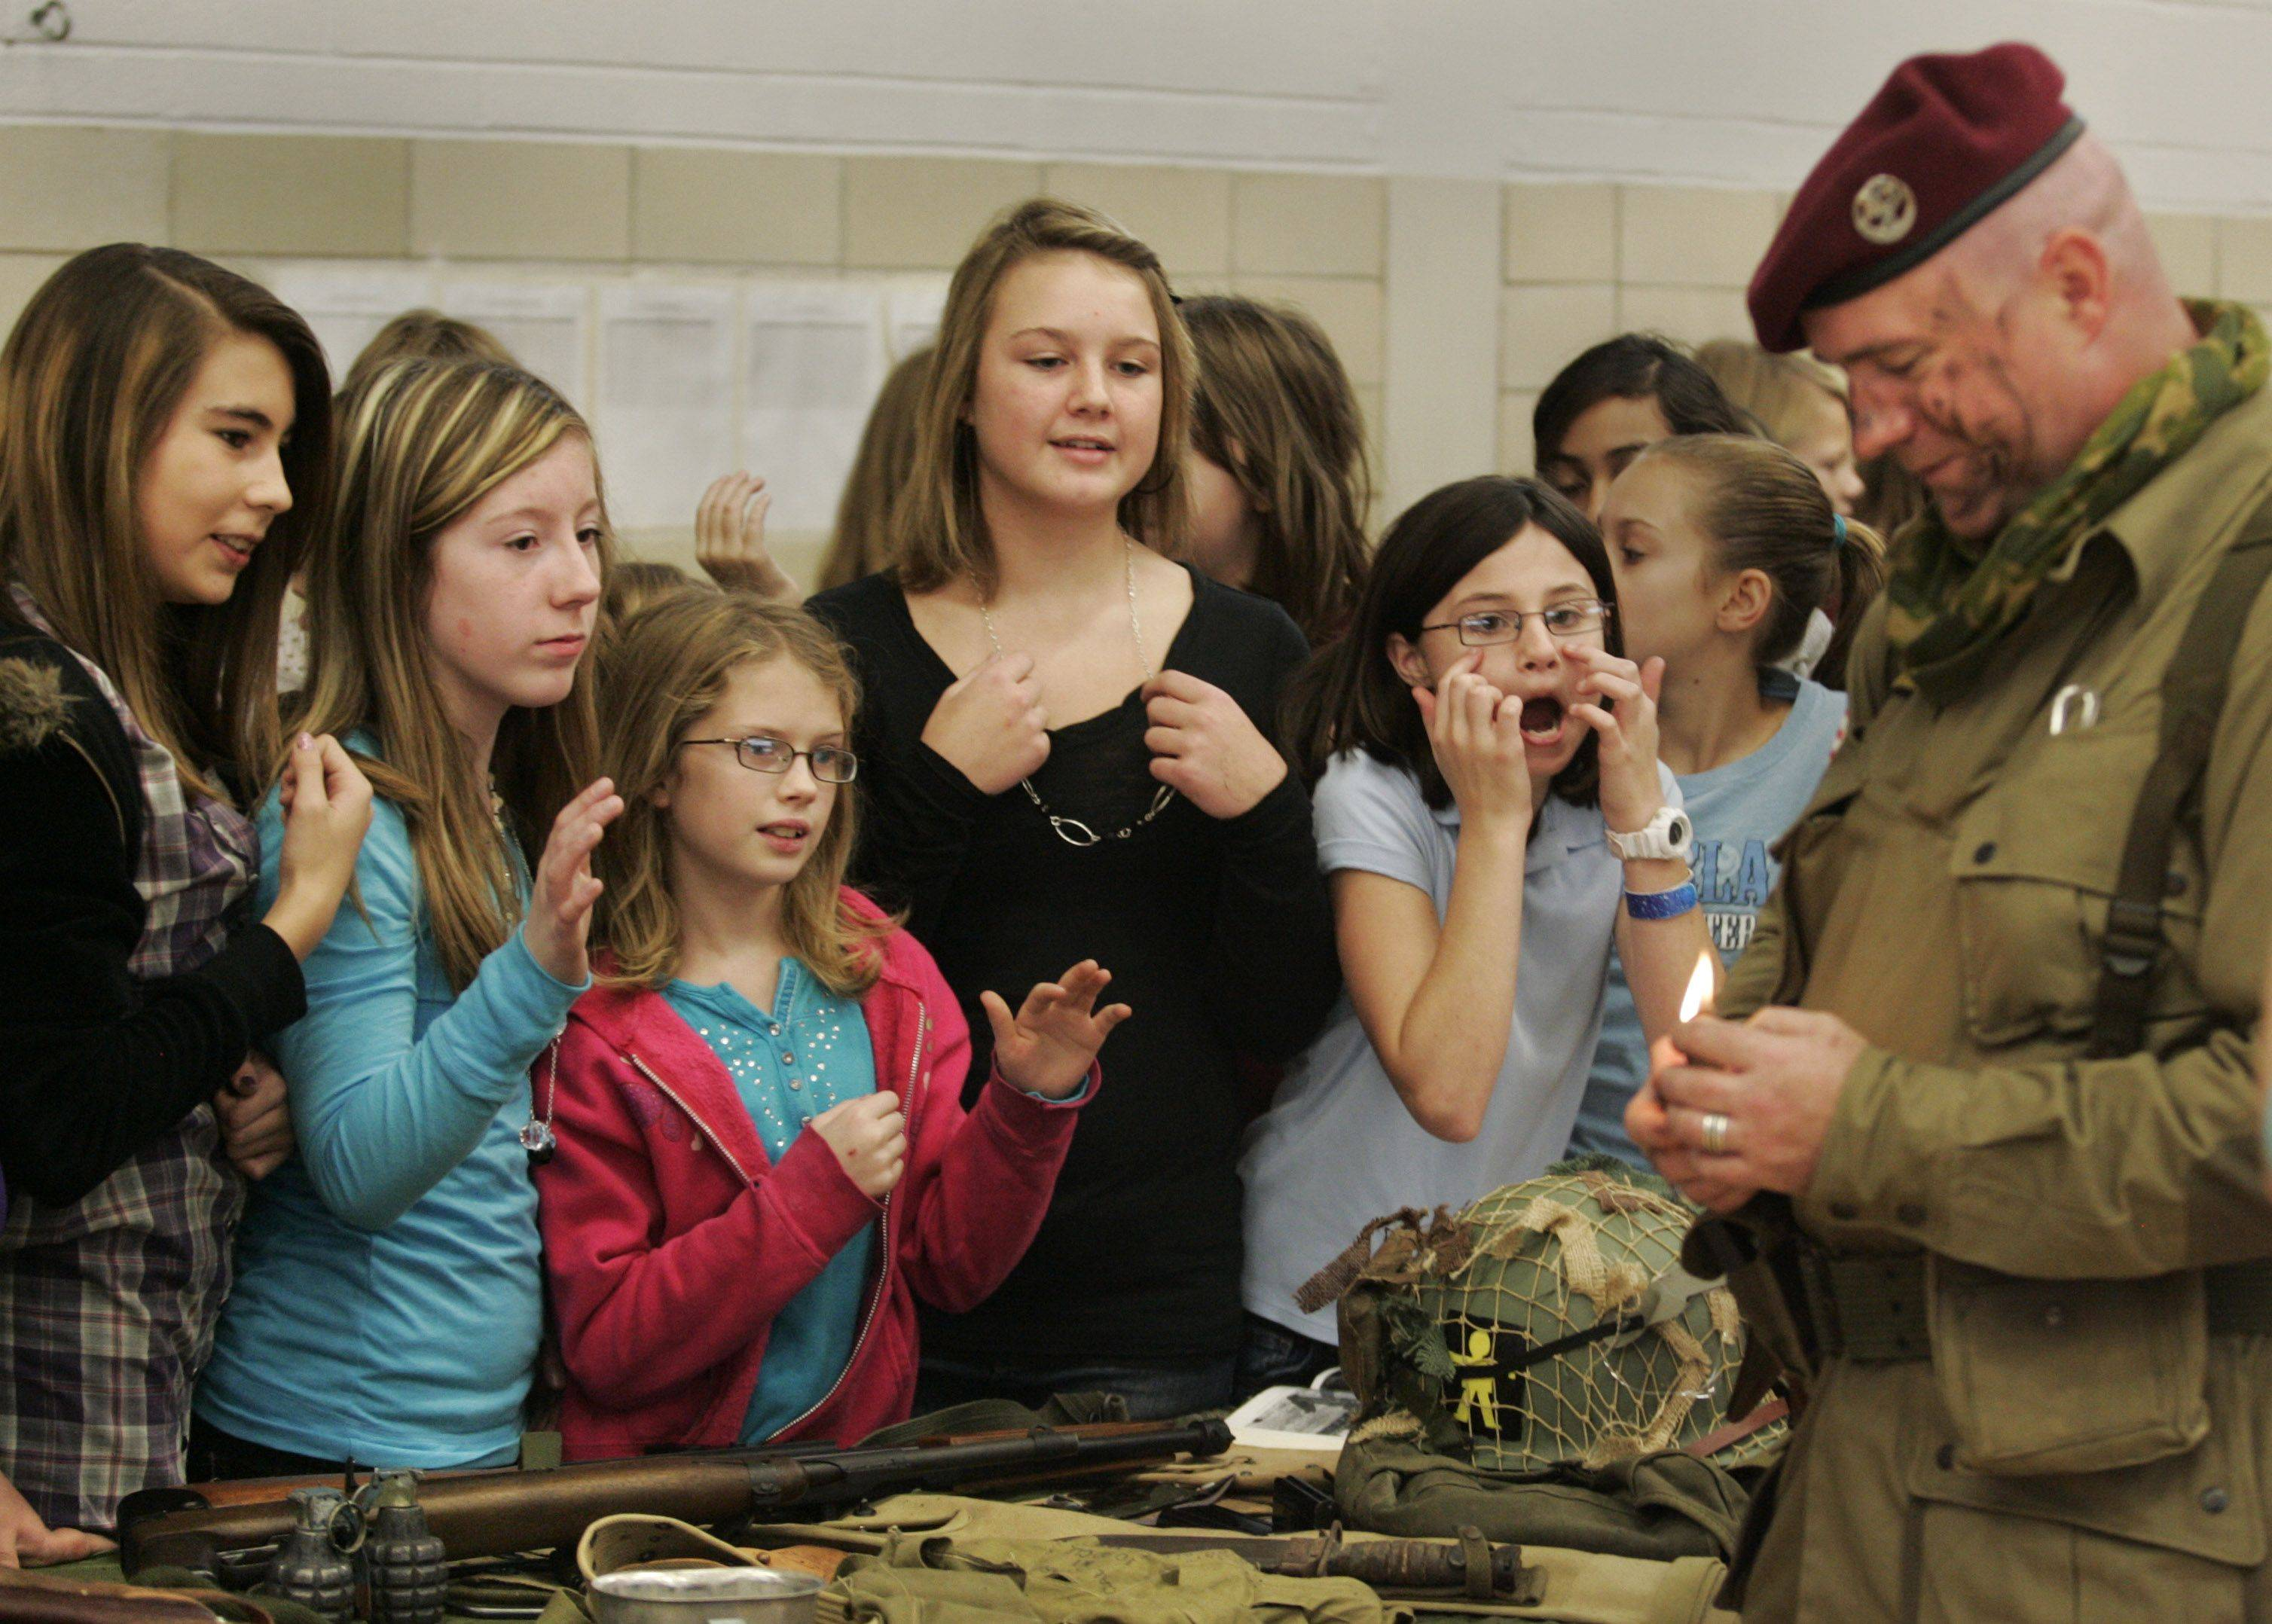 Sixth-grade girls wait anxiously for their chance to have burned wine cork rubbed on their faces during an interactive display on Veterans Day at Hampshire Middle School. Re-enactor Stephane Goupil demonstrated how troops would burn the ends of wine corks and them smear them on their faces to provide additional camouflage during night parachute drops. Goupil, who served as an infantryman in France, now lives in Barrington and is a member of the 509th parachute infantry battalion re-enactment group.